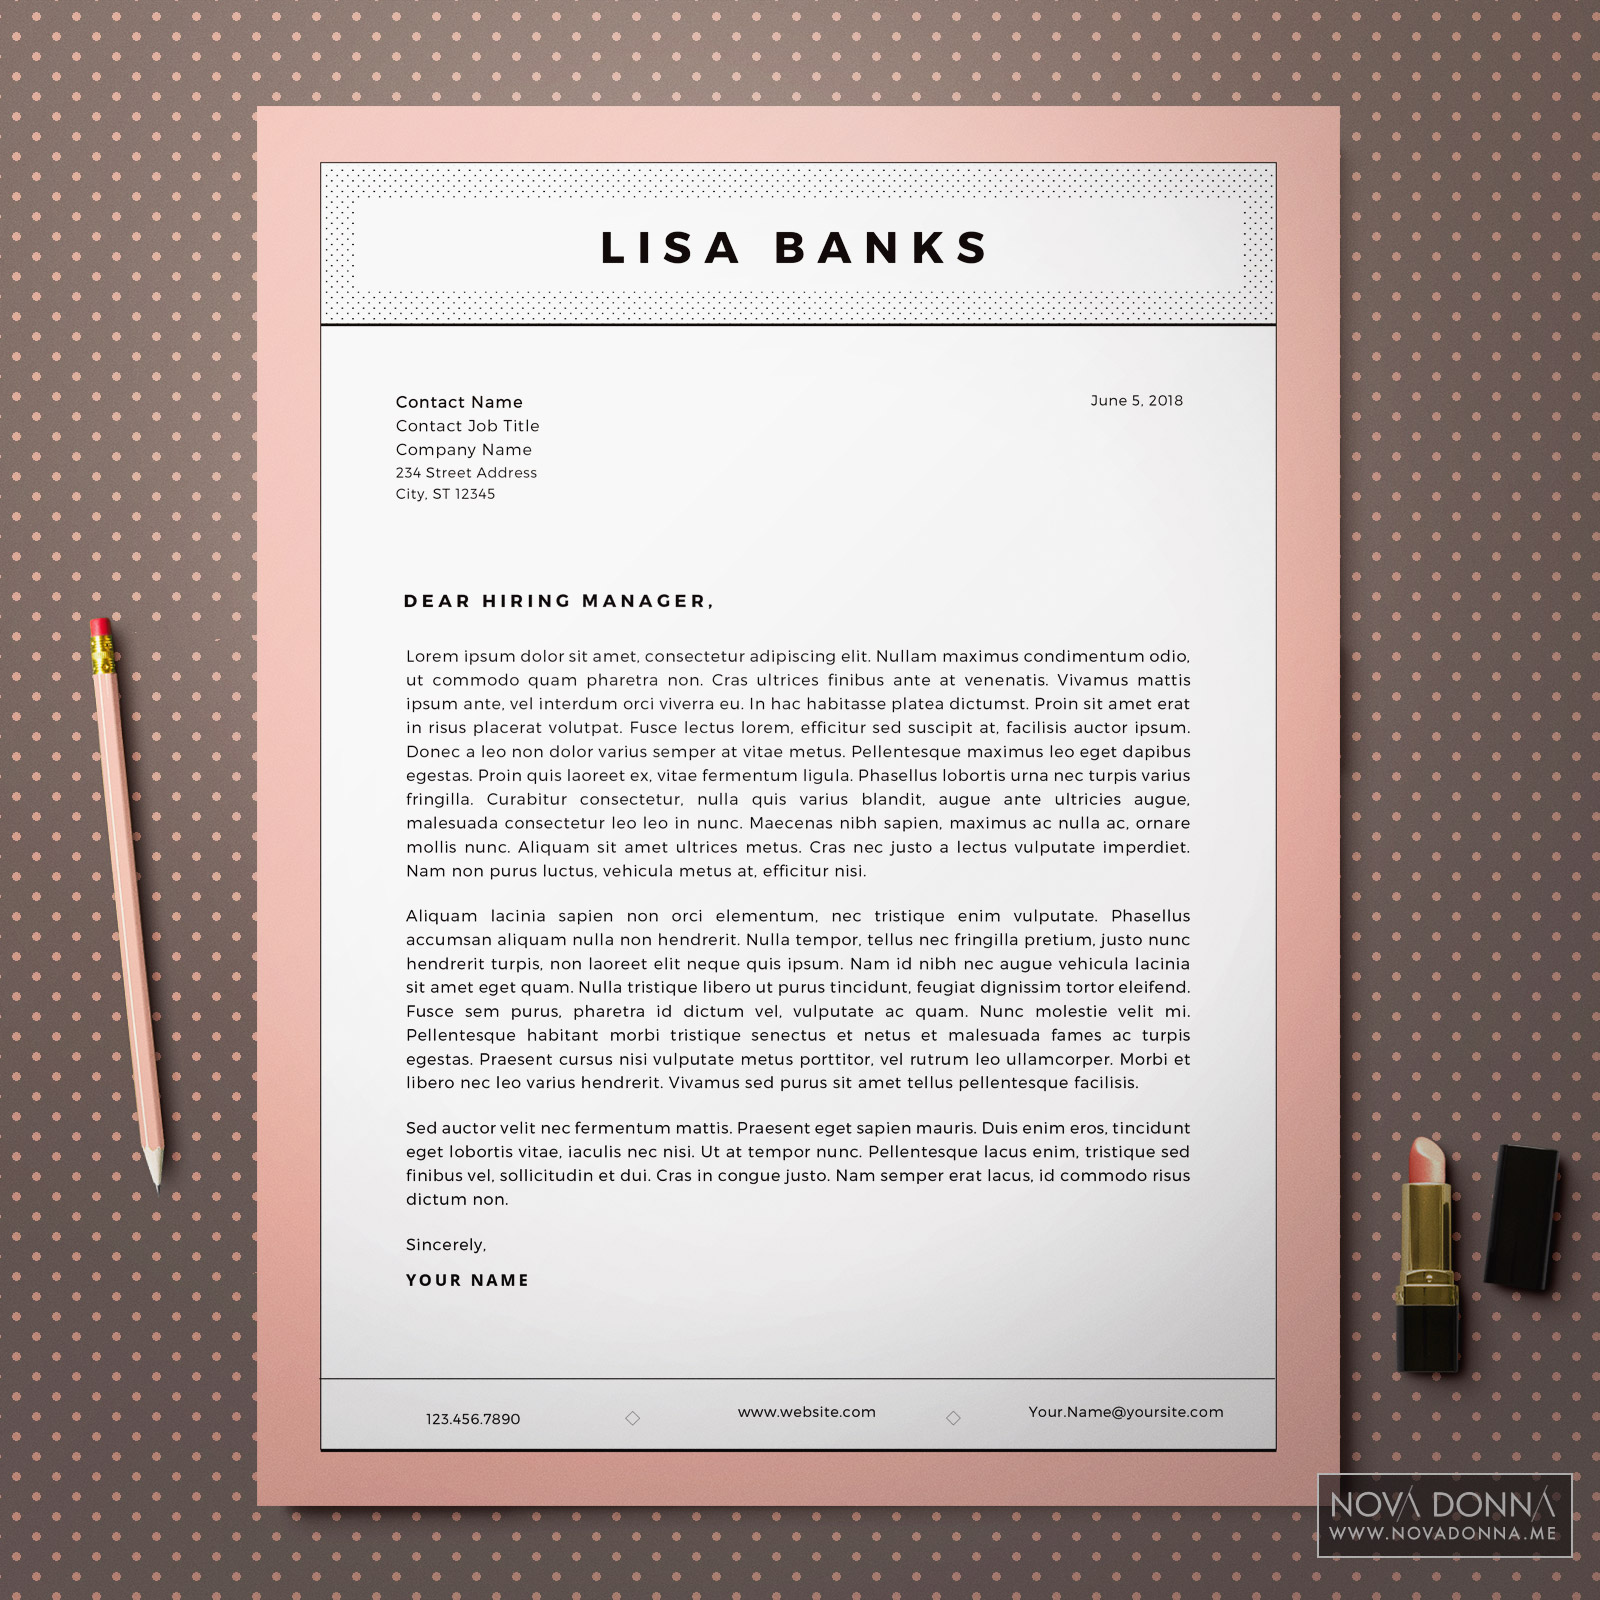 Resume Template / CV Template Design for Word + Cover Letter | Printable on letter design objects, letter design examples, letter design stencils, letter design christmas, letter design paper, letter design ideas, letter design fonts, letter design cards, letter design printables, letter typography, letter g designs, letter design drawings, letter design clipart, letter t designs, letter design logos, letter design help,